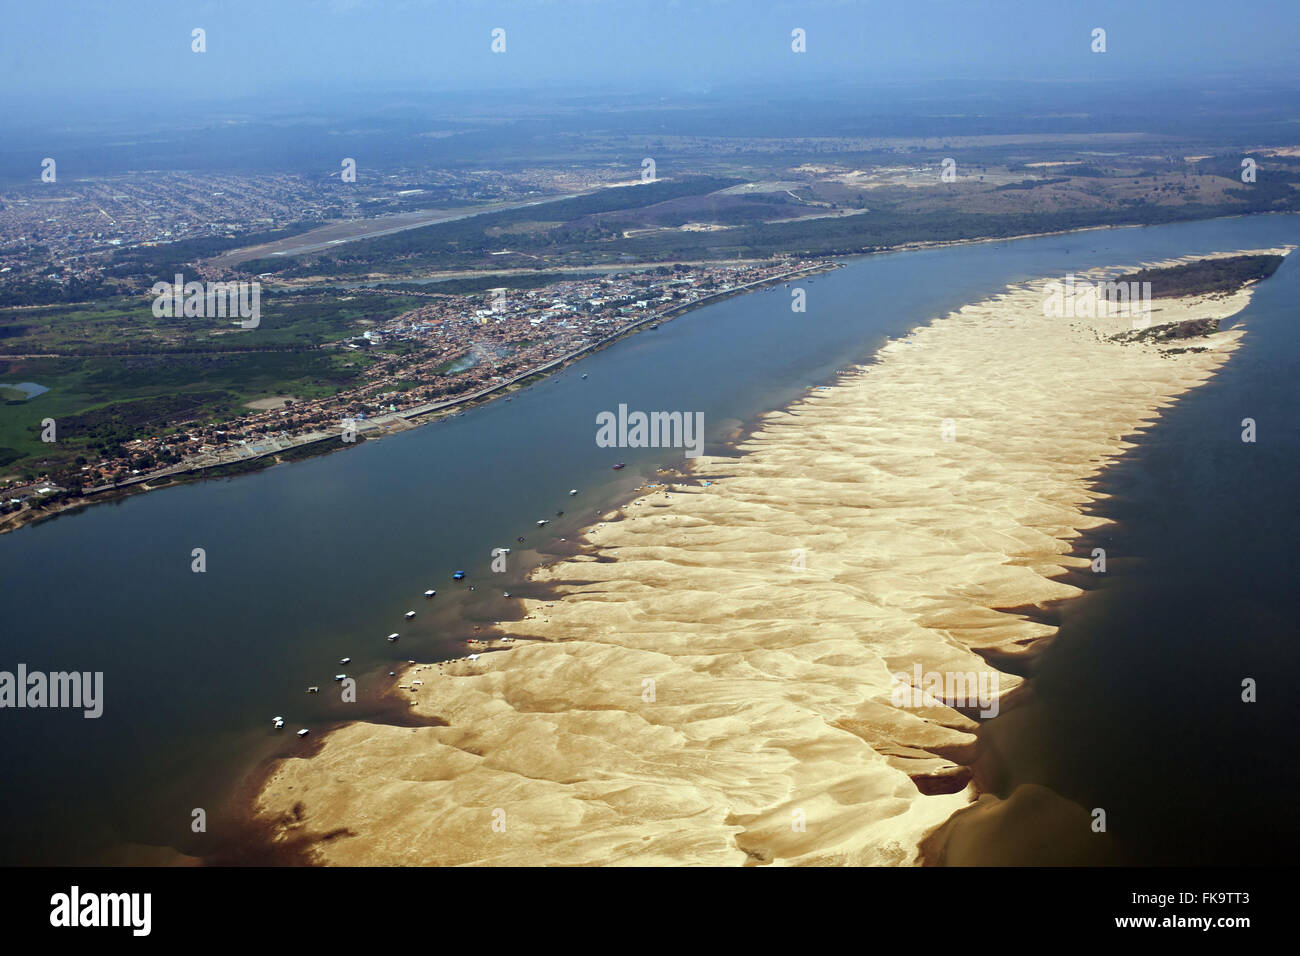 Aerial view of the city of Maraba in the margin of the Tocantins River - Stock Image